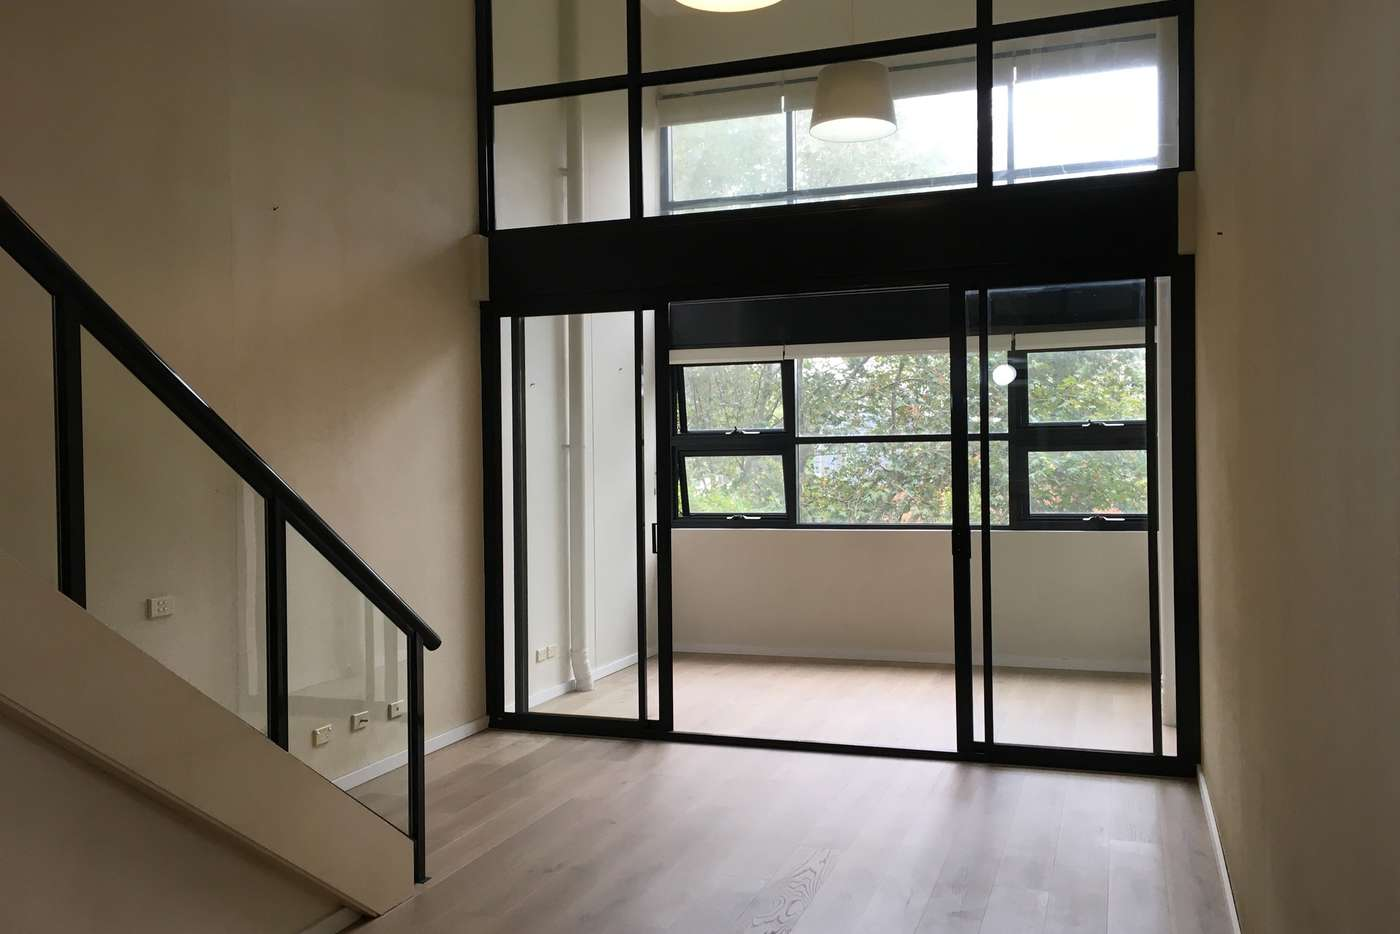 Main view of Homely apartment listing, 302/174 Goulburn Street, Surry Hills NSW 2010